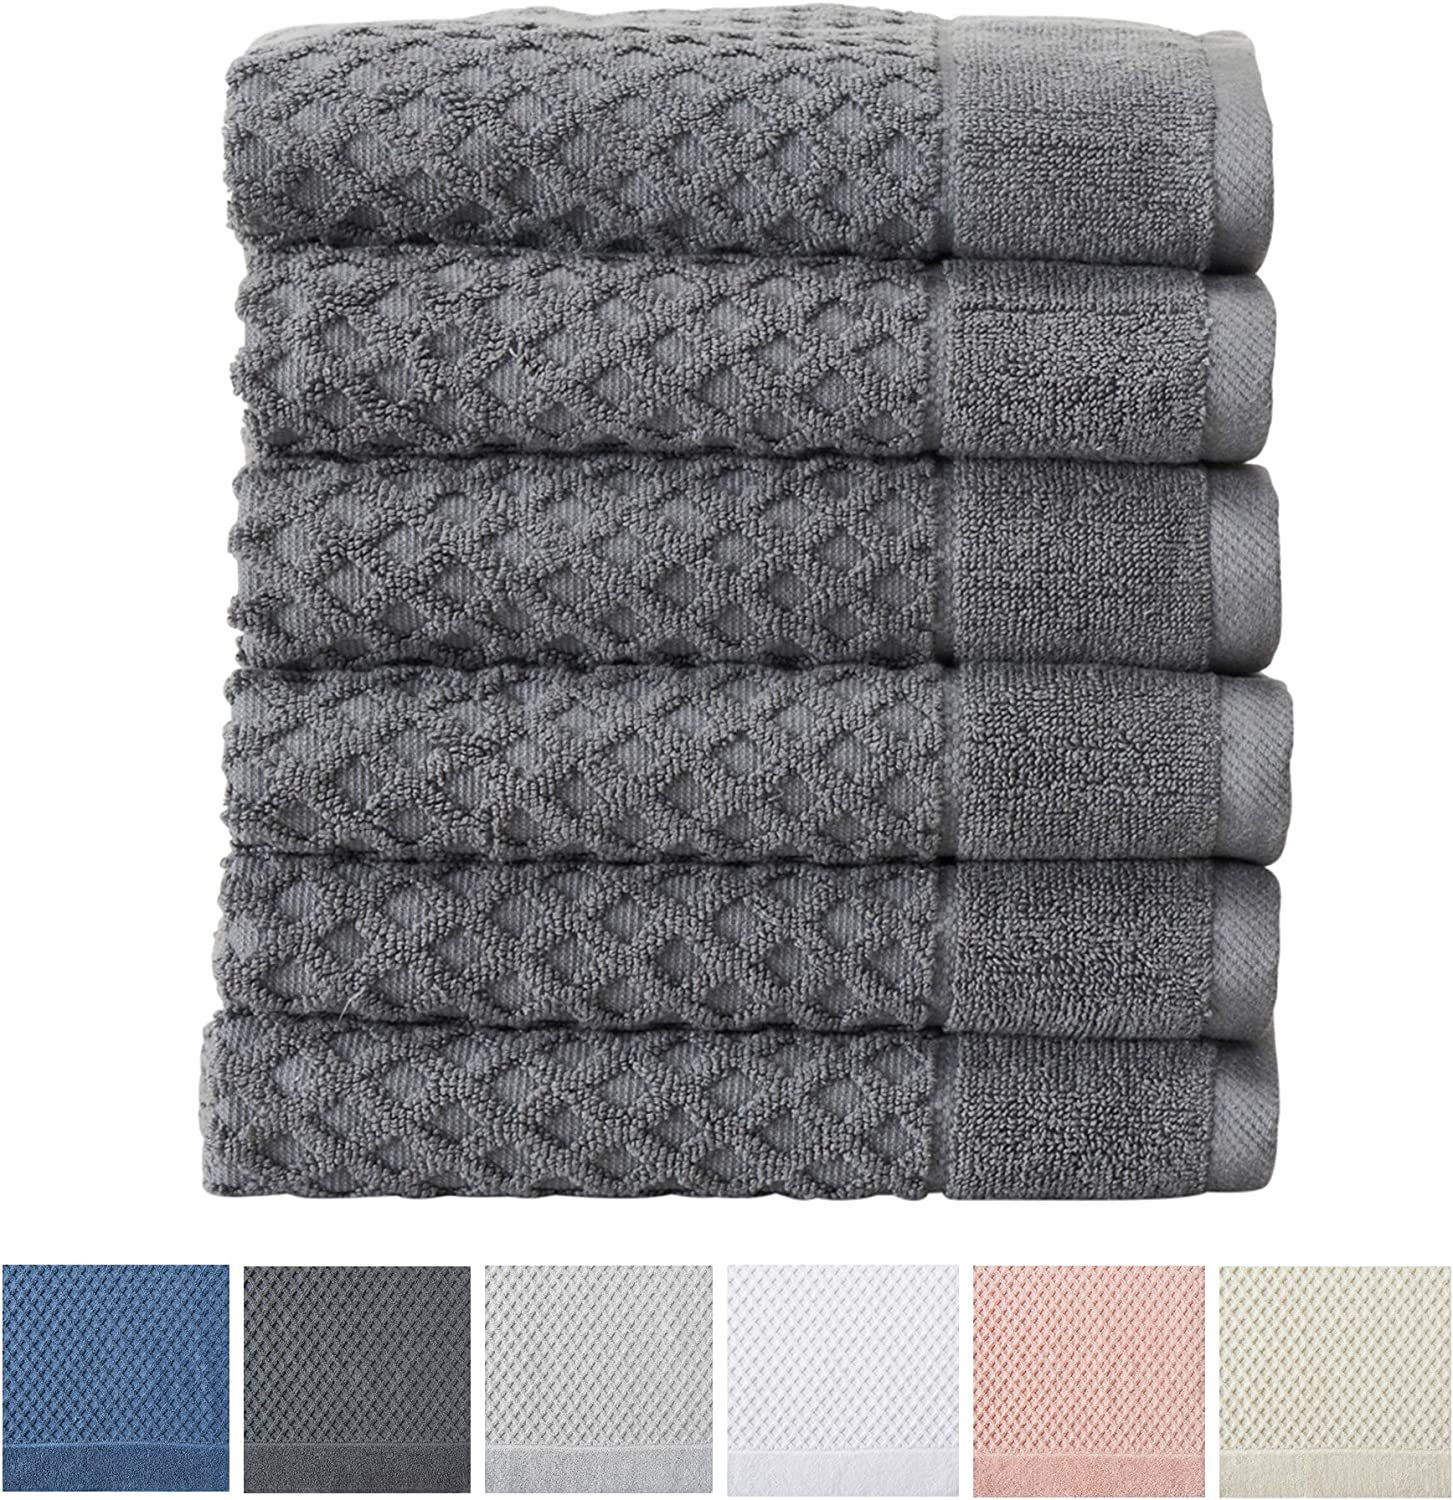 Textured Luxury Hand Towels Set of 6, Pink Grayson Collection Highly Absorbent Great Bay Home 100/% Cotton Hand Towel Set 16 x 28 inches